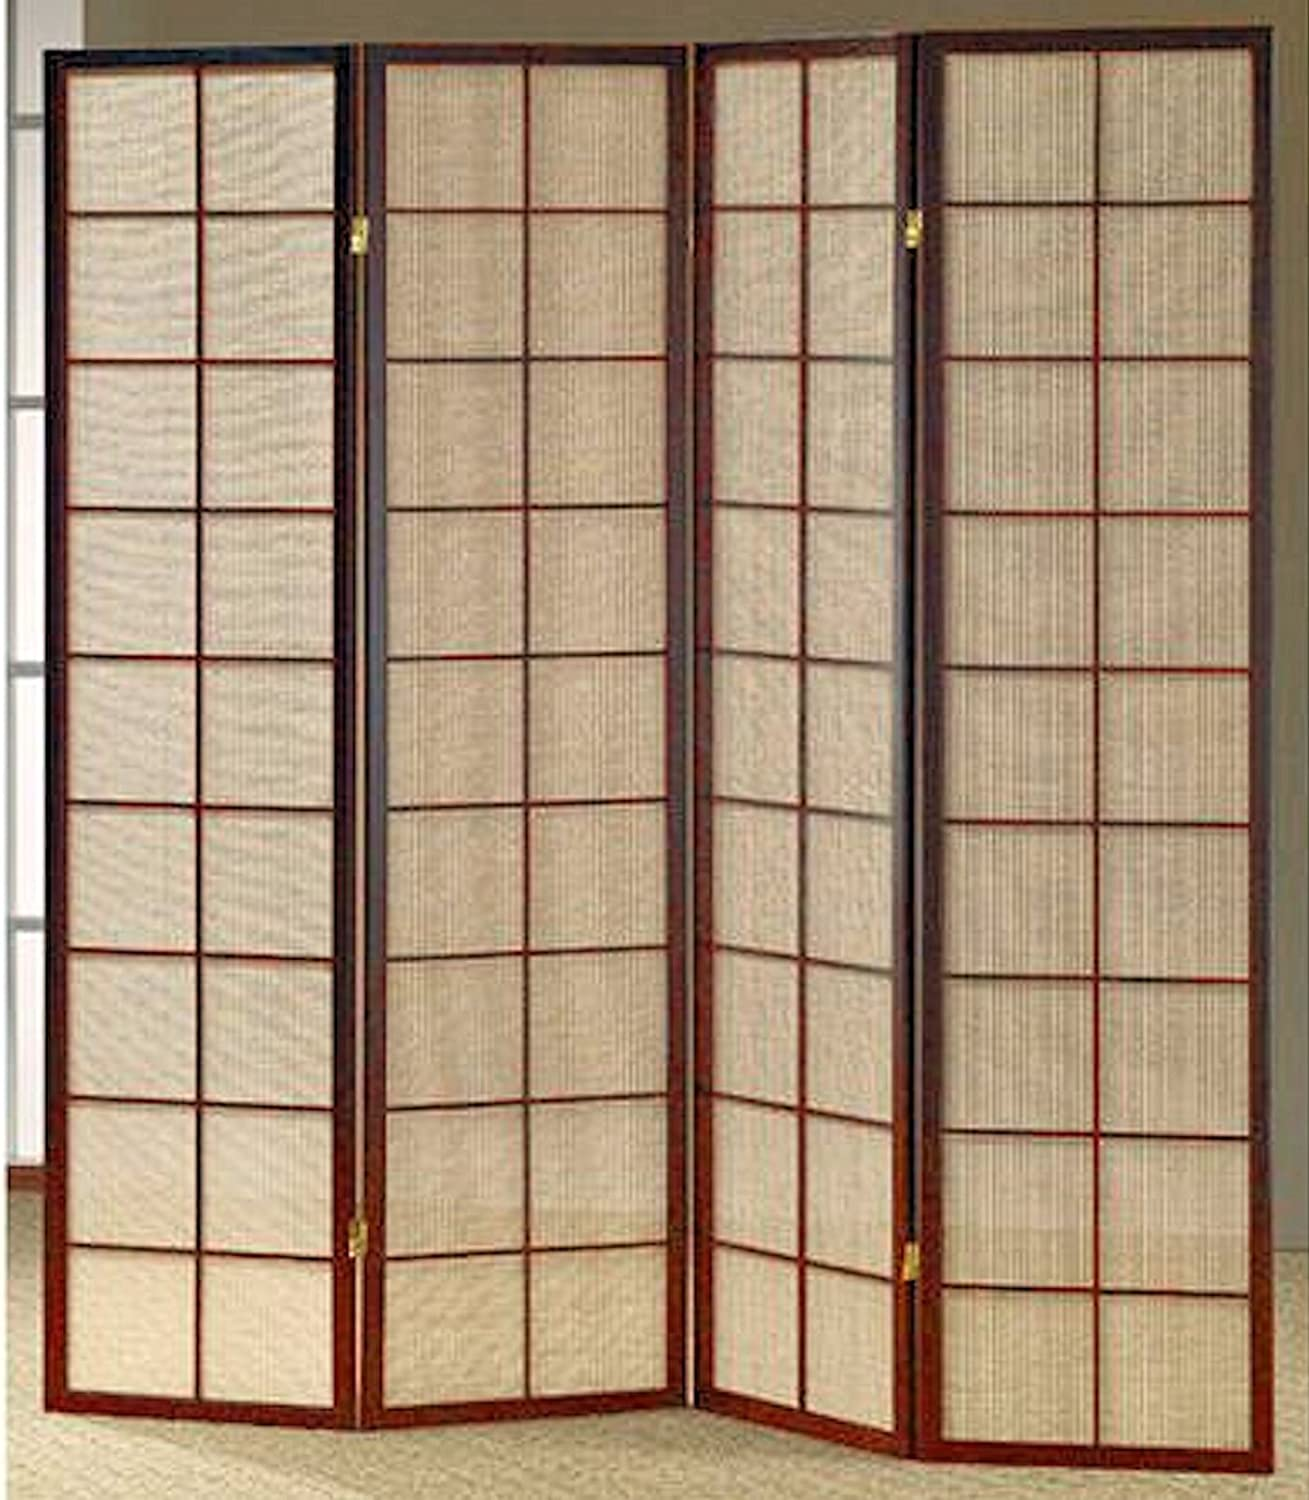 Amazoncom Legacy Decor Fabric In Lay Folding Room Screen Divider - Cherry blossom room divider screen